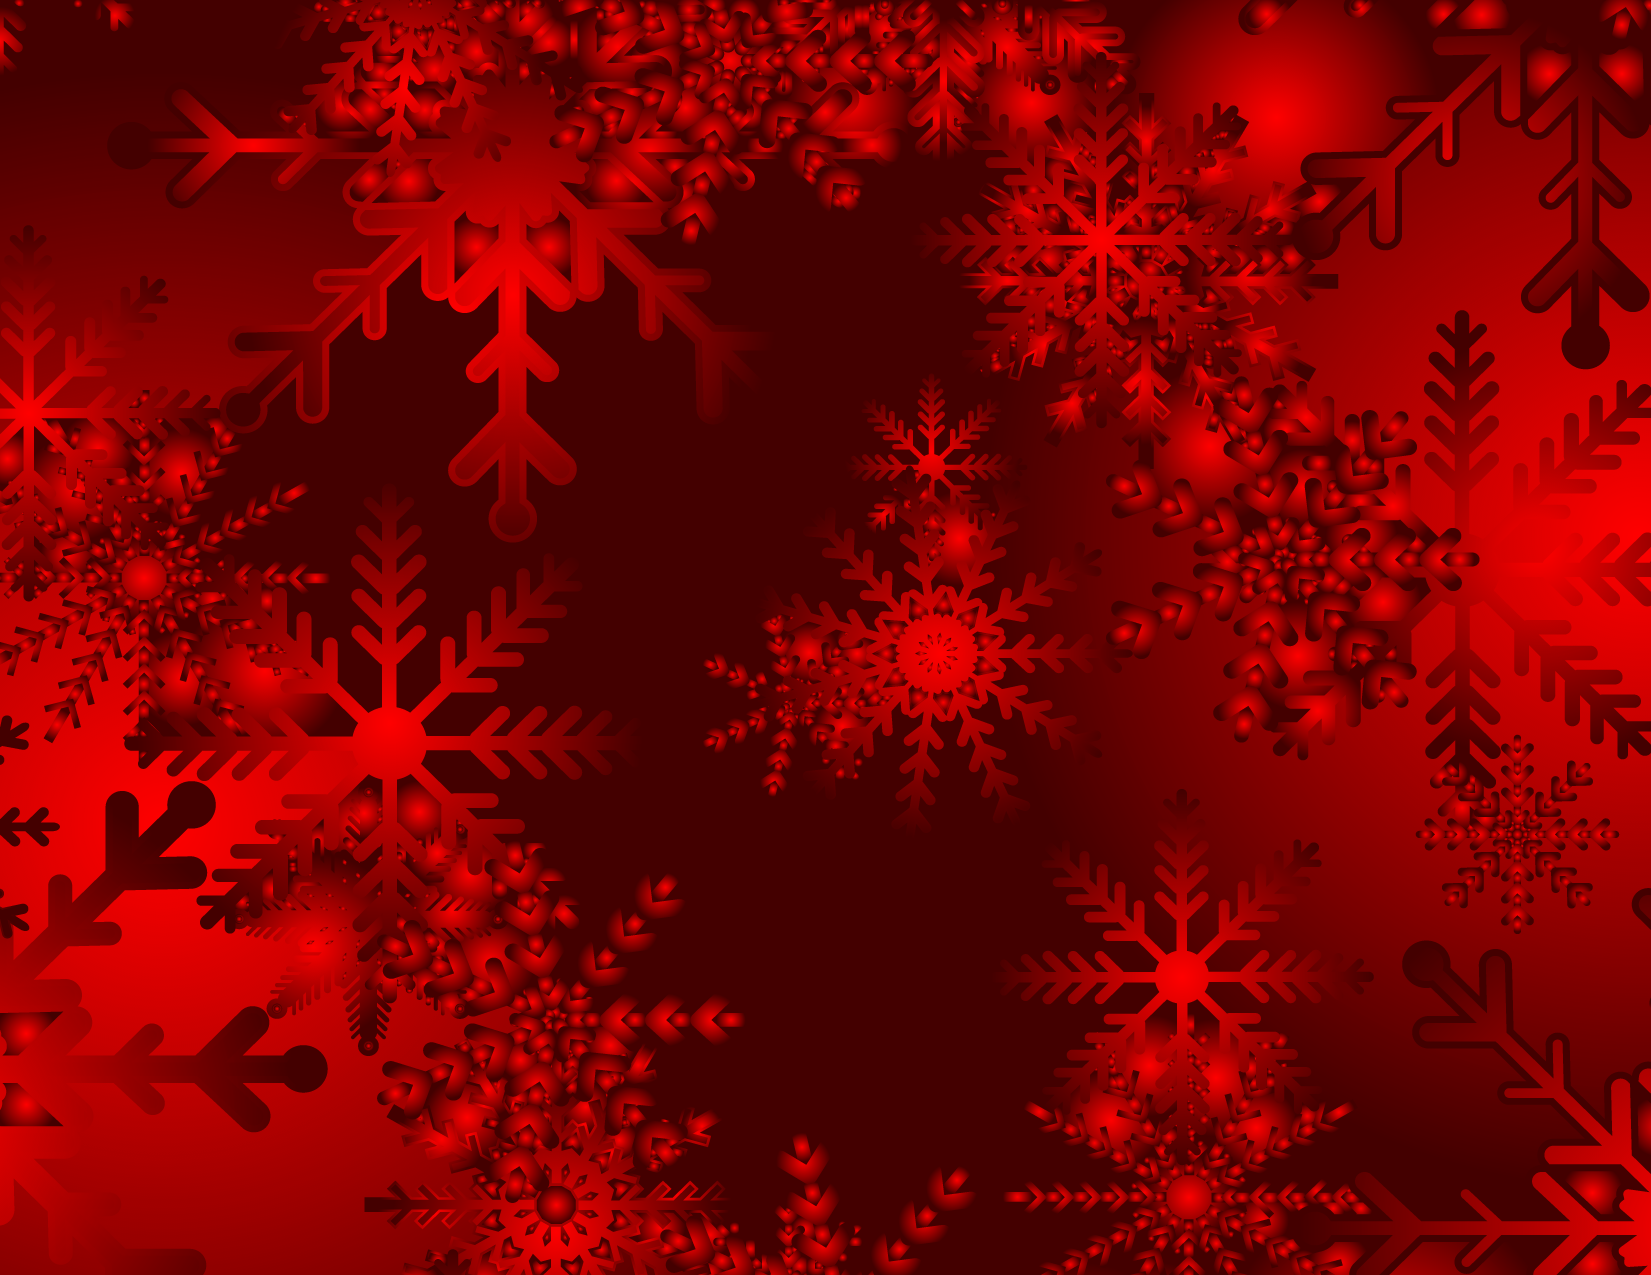 1651x1275 Christmas Snowy Red Vector Background Free Vector Background